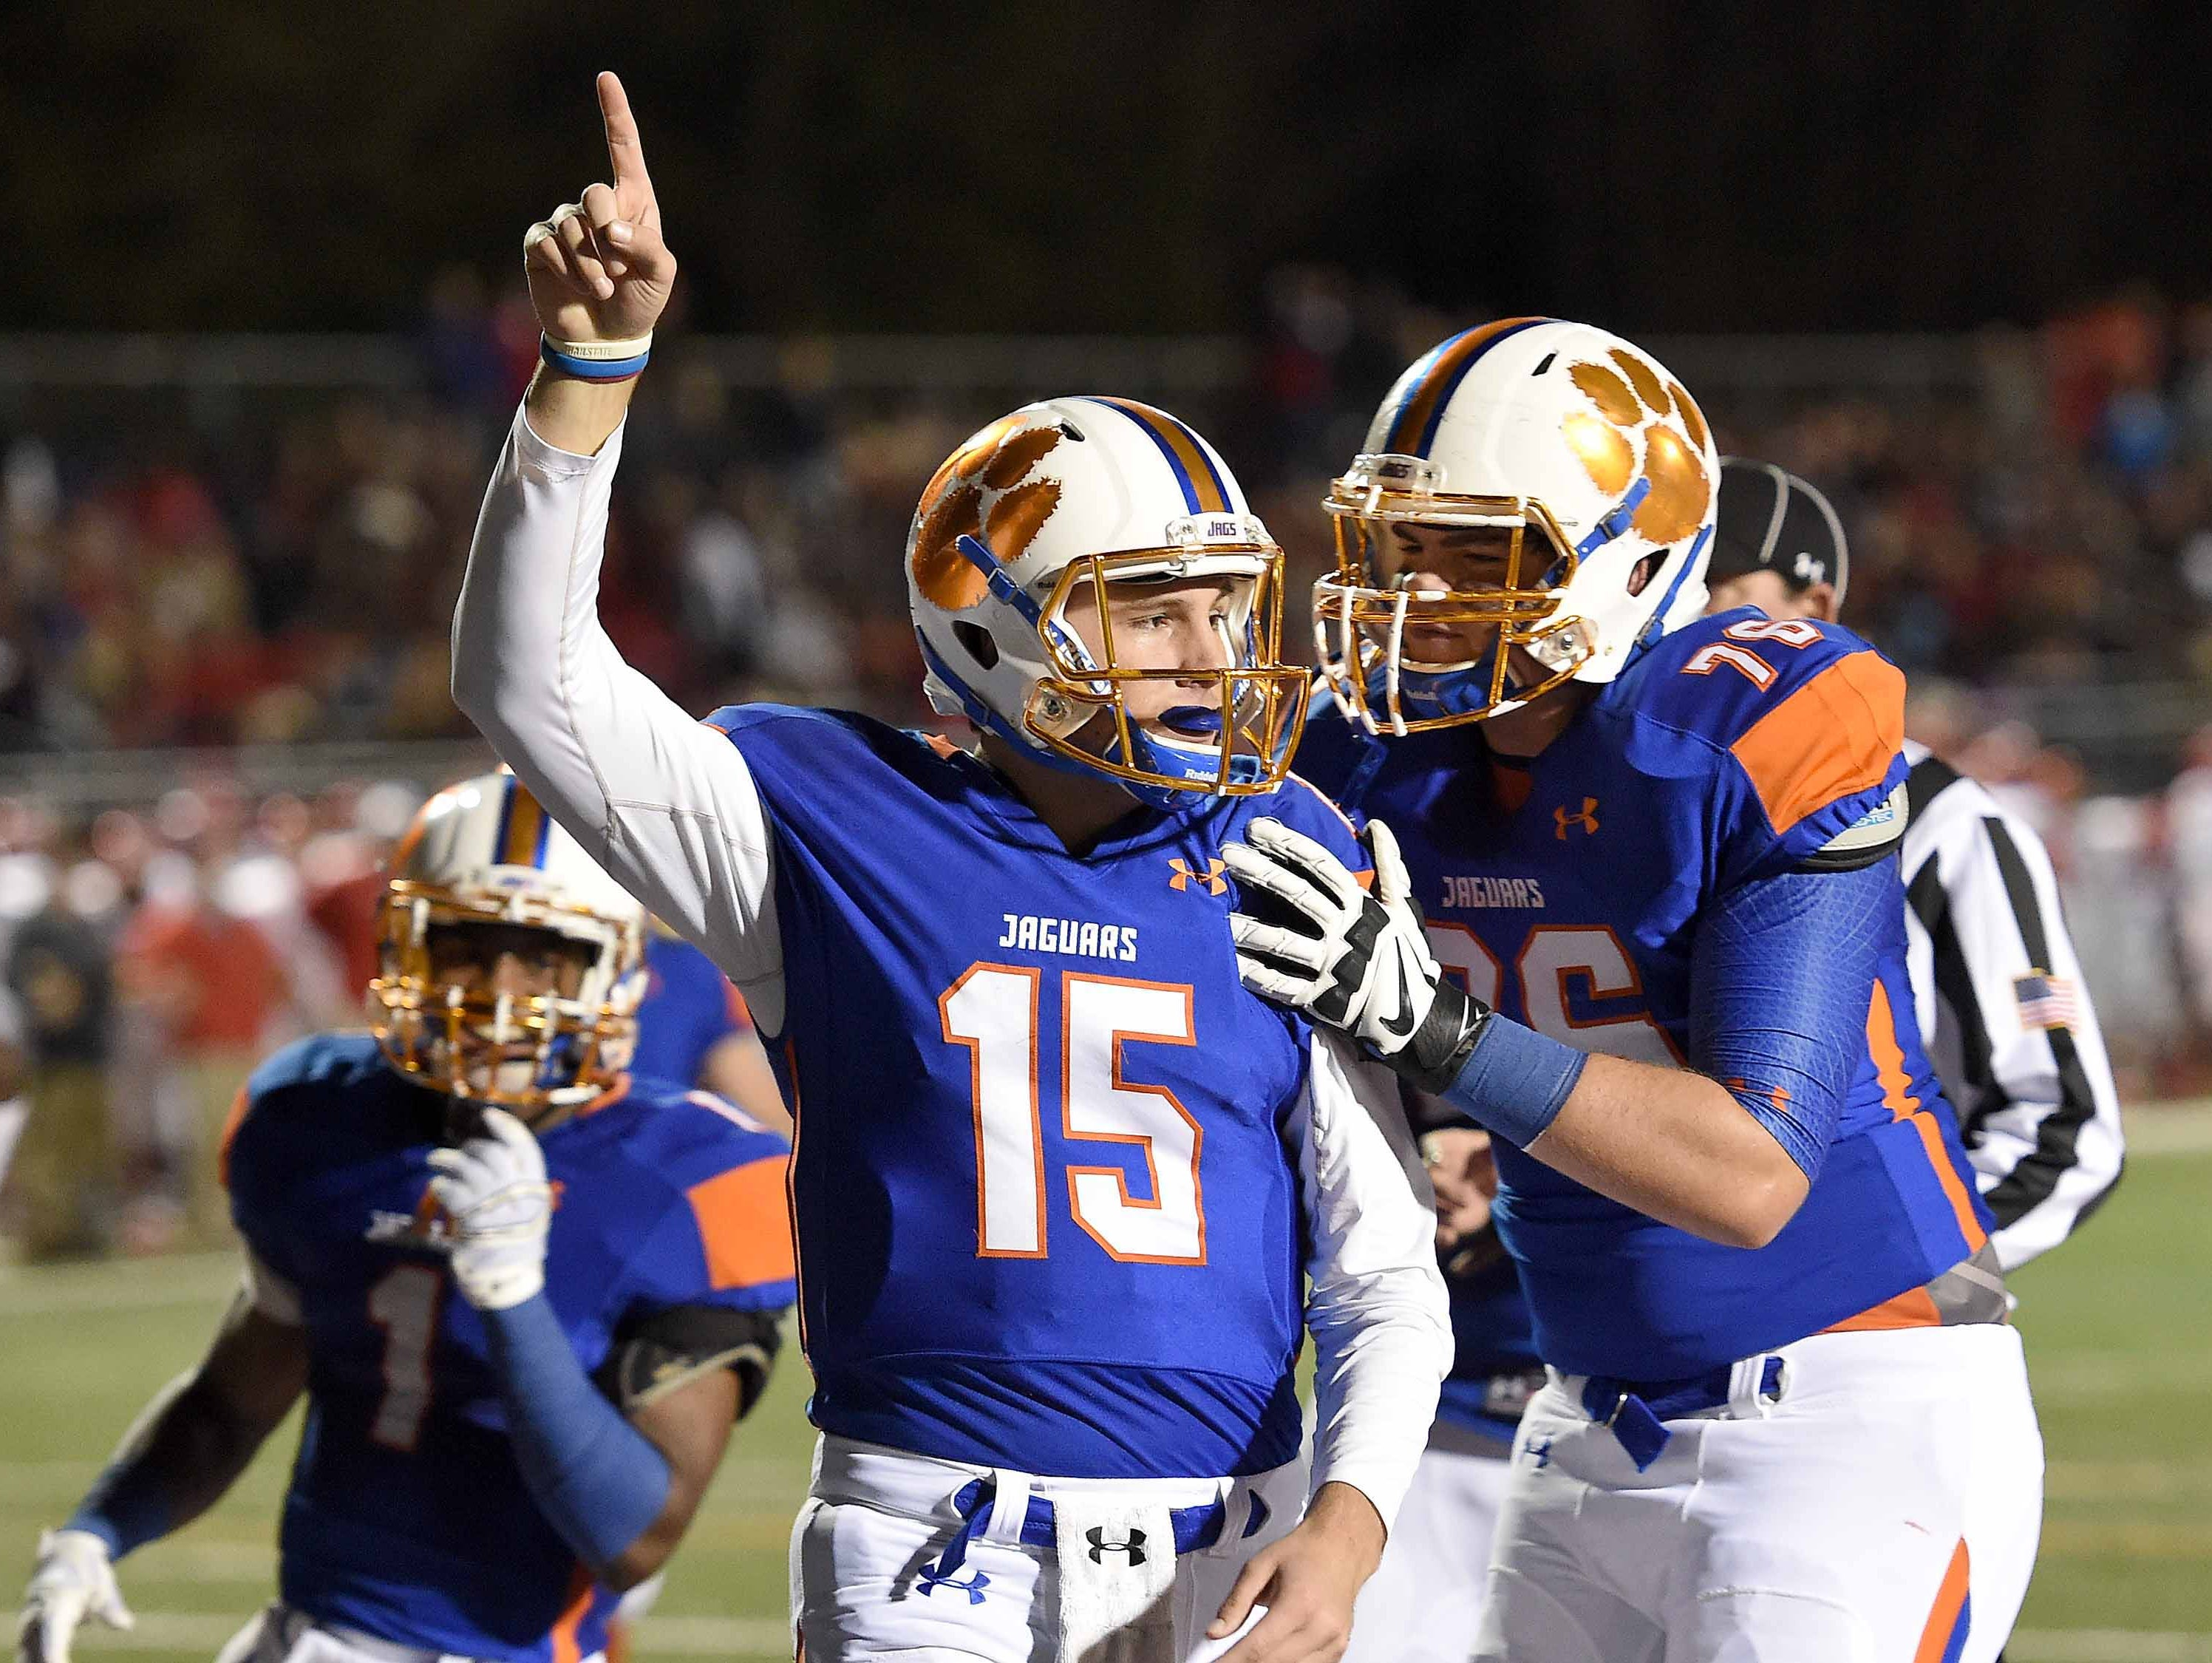 Madison Central quarterback Jack Walker (15) and the Jaguars will look to keep their dream post-season alive against Starkville this Friday night.